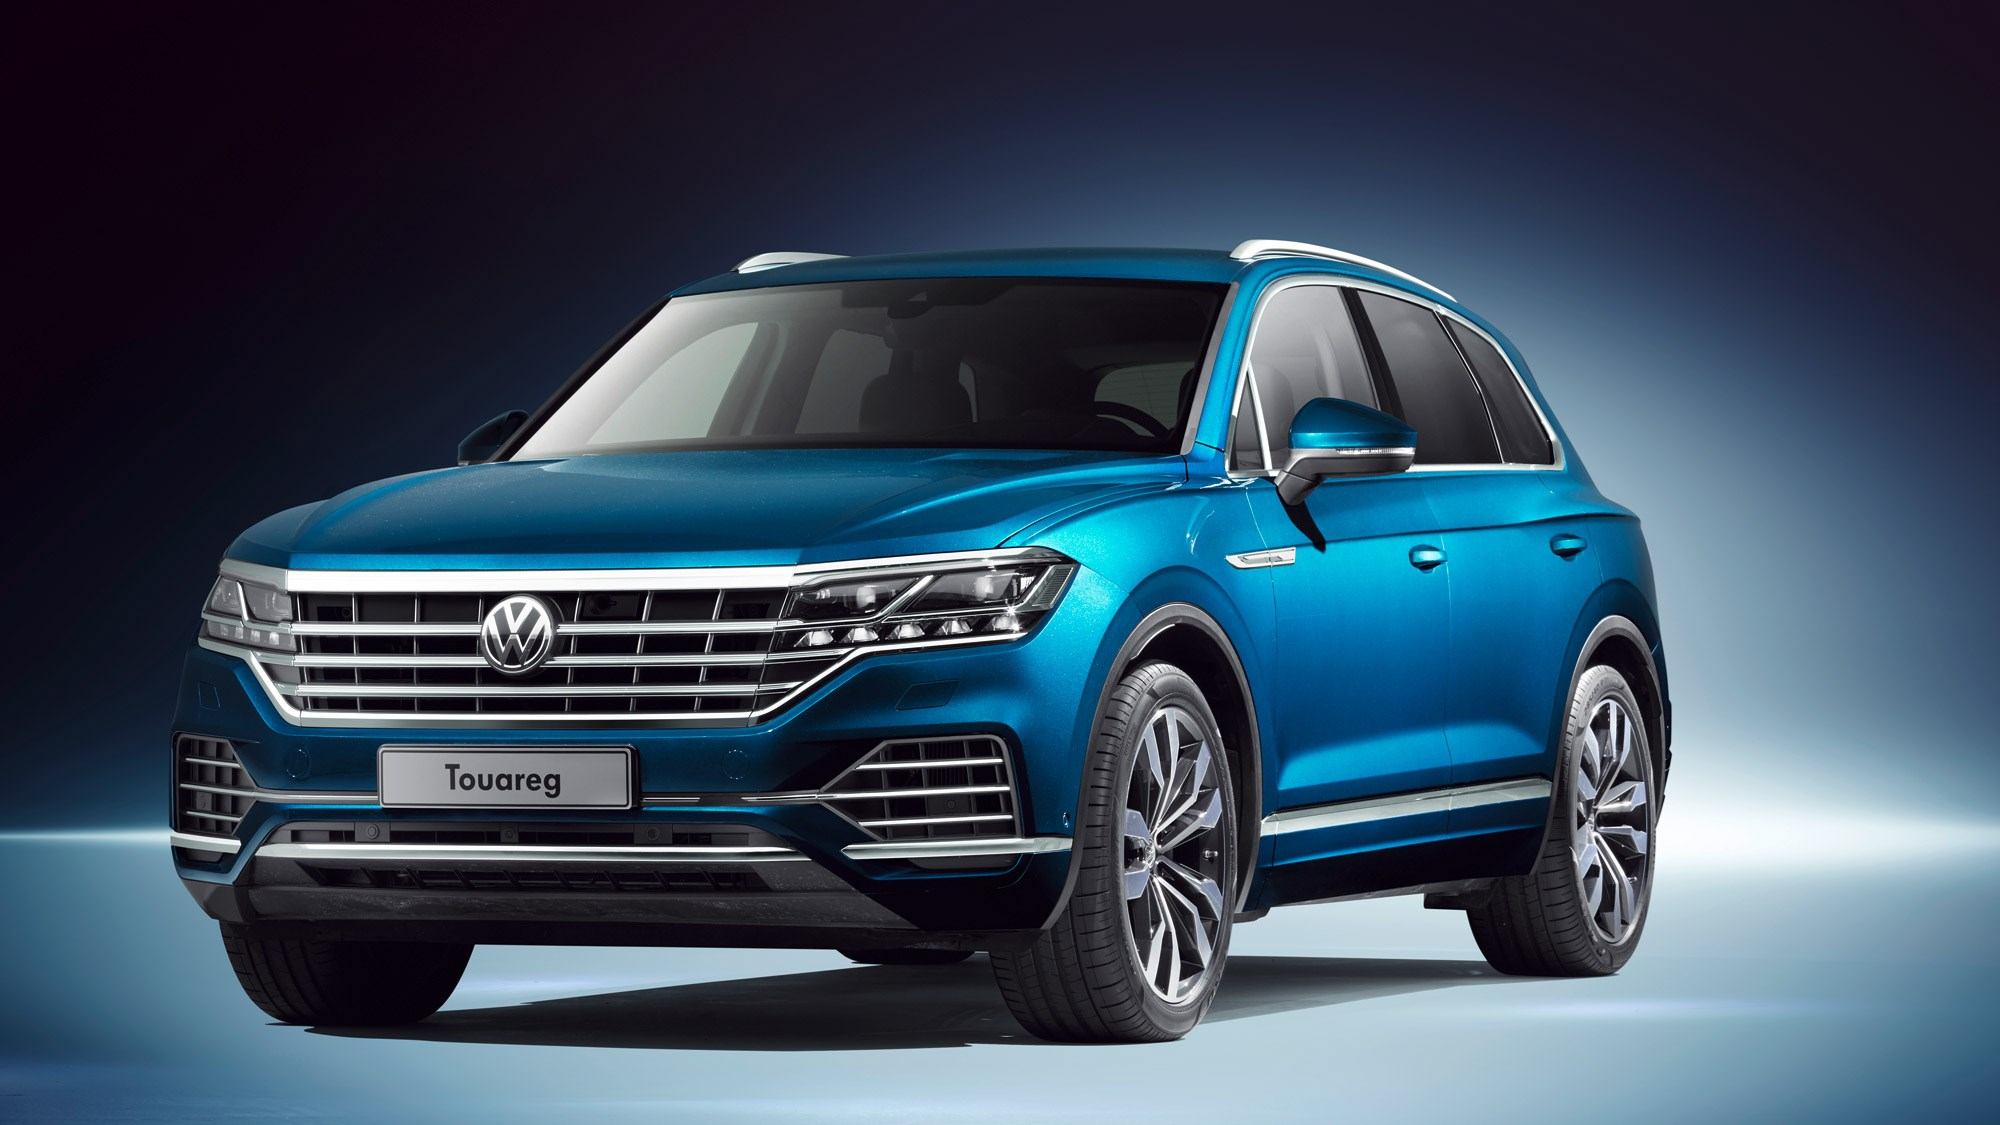 new vw touareg techy flagship suv revealed in beijing car magazine. Black Bedroom Furniture Sets. Home Design Ideas